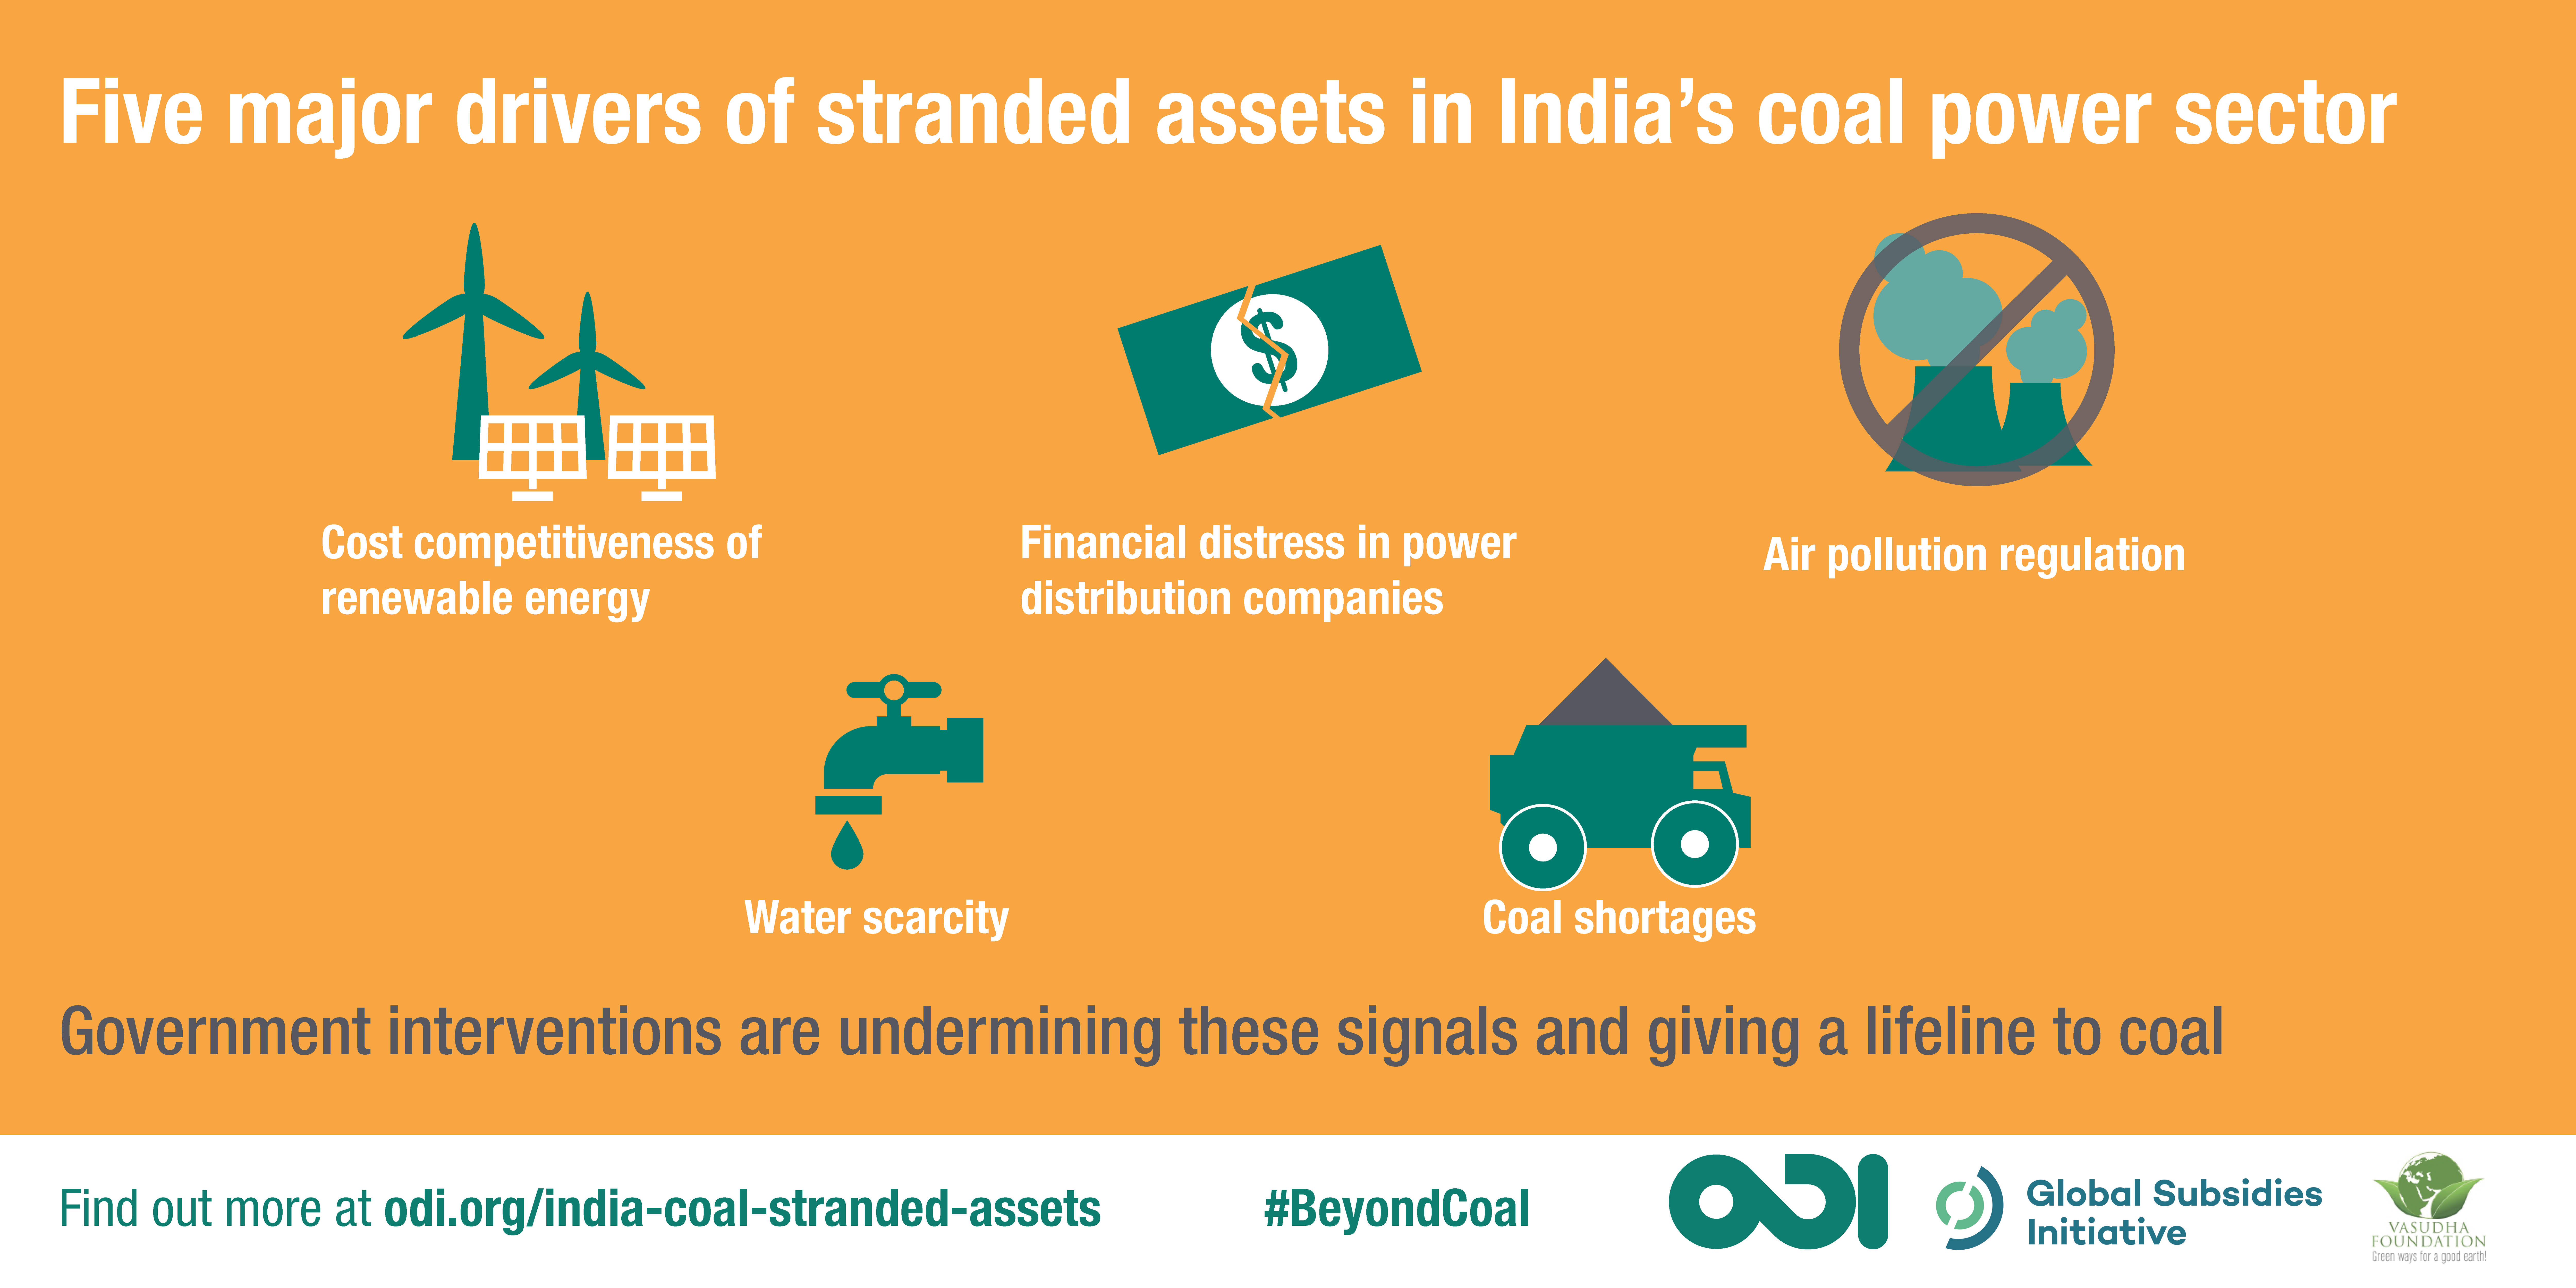 Five major drivers of stranded assets in India's coal power sector. Graphic: Chris Little/ODI